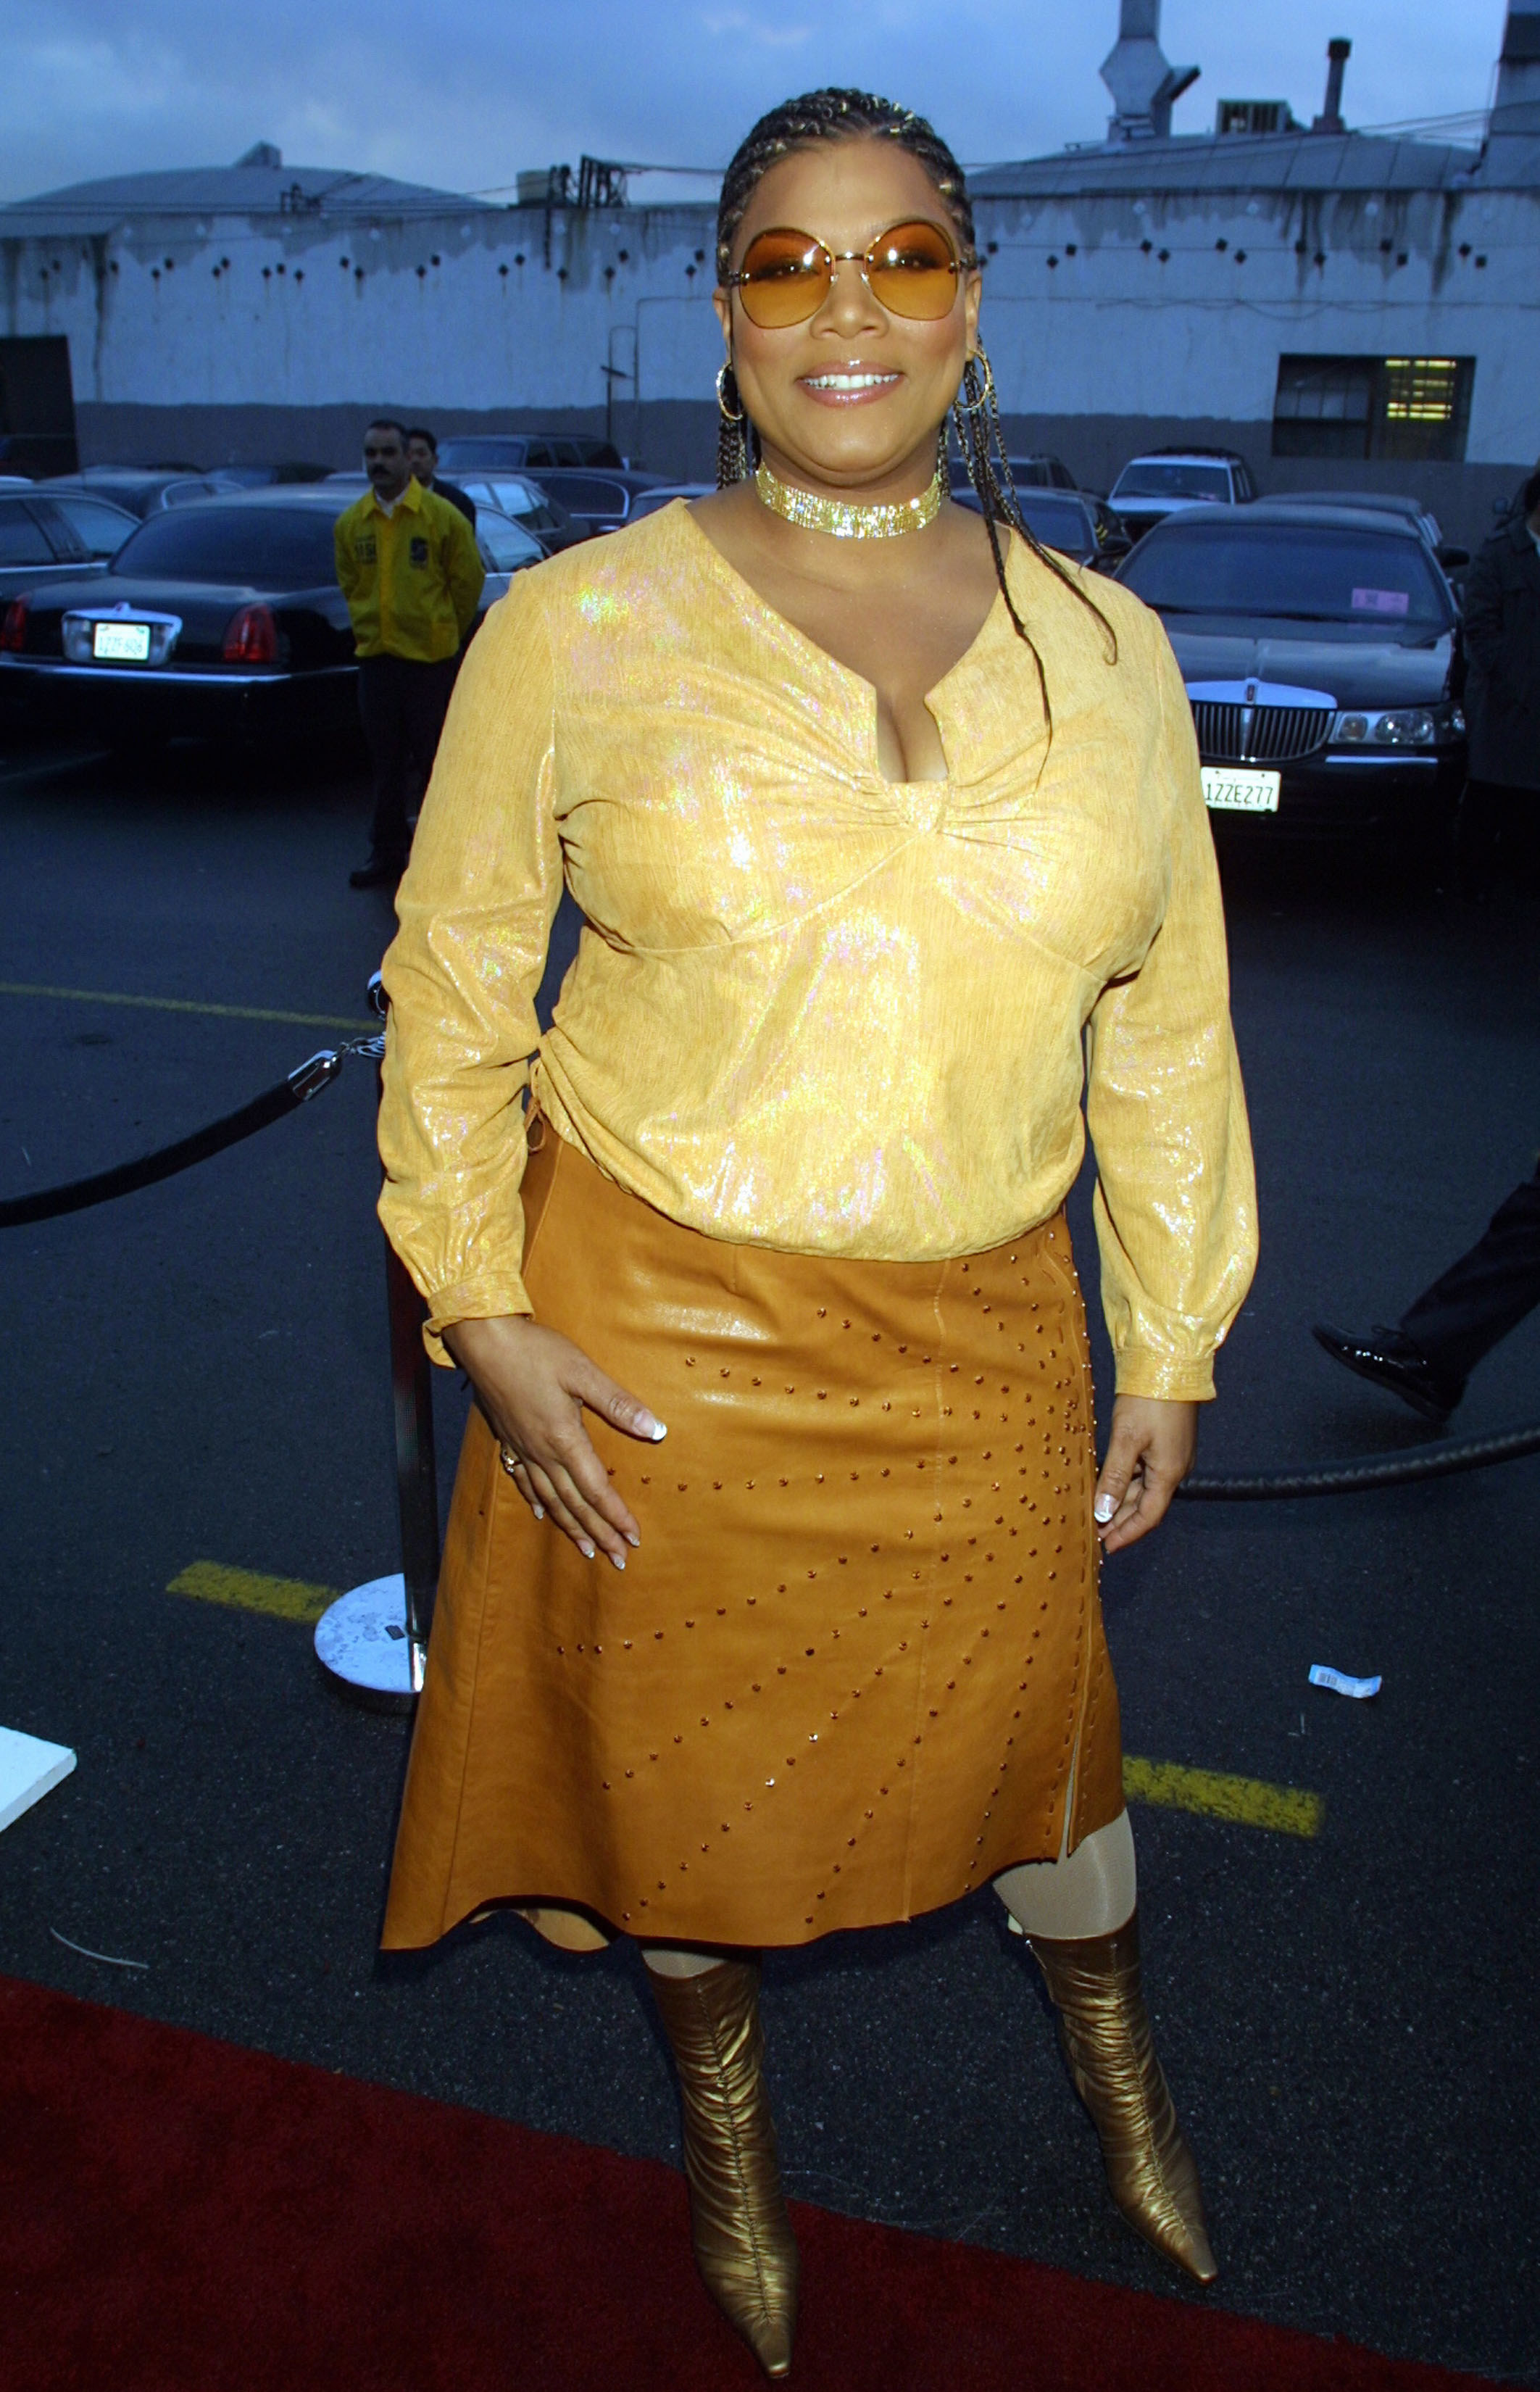 Queen Latifah wearing studded leather and sunglasses on a red carpet